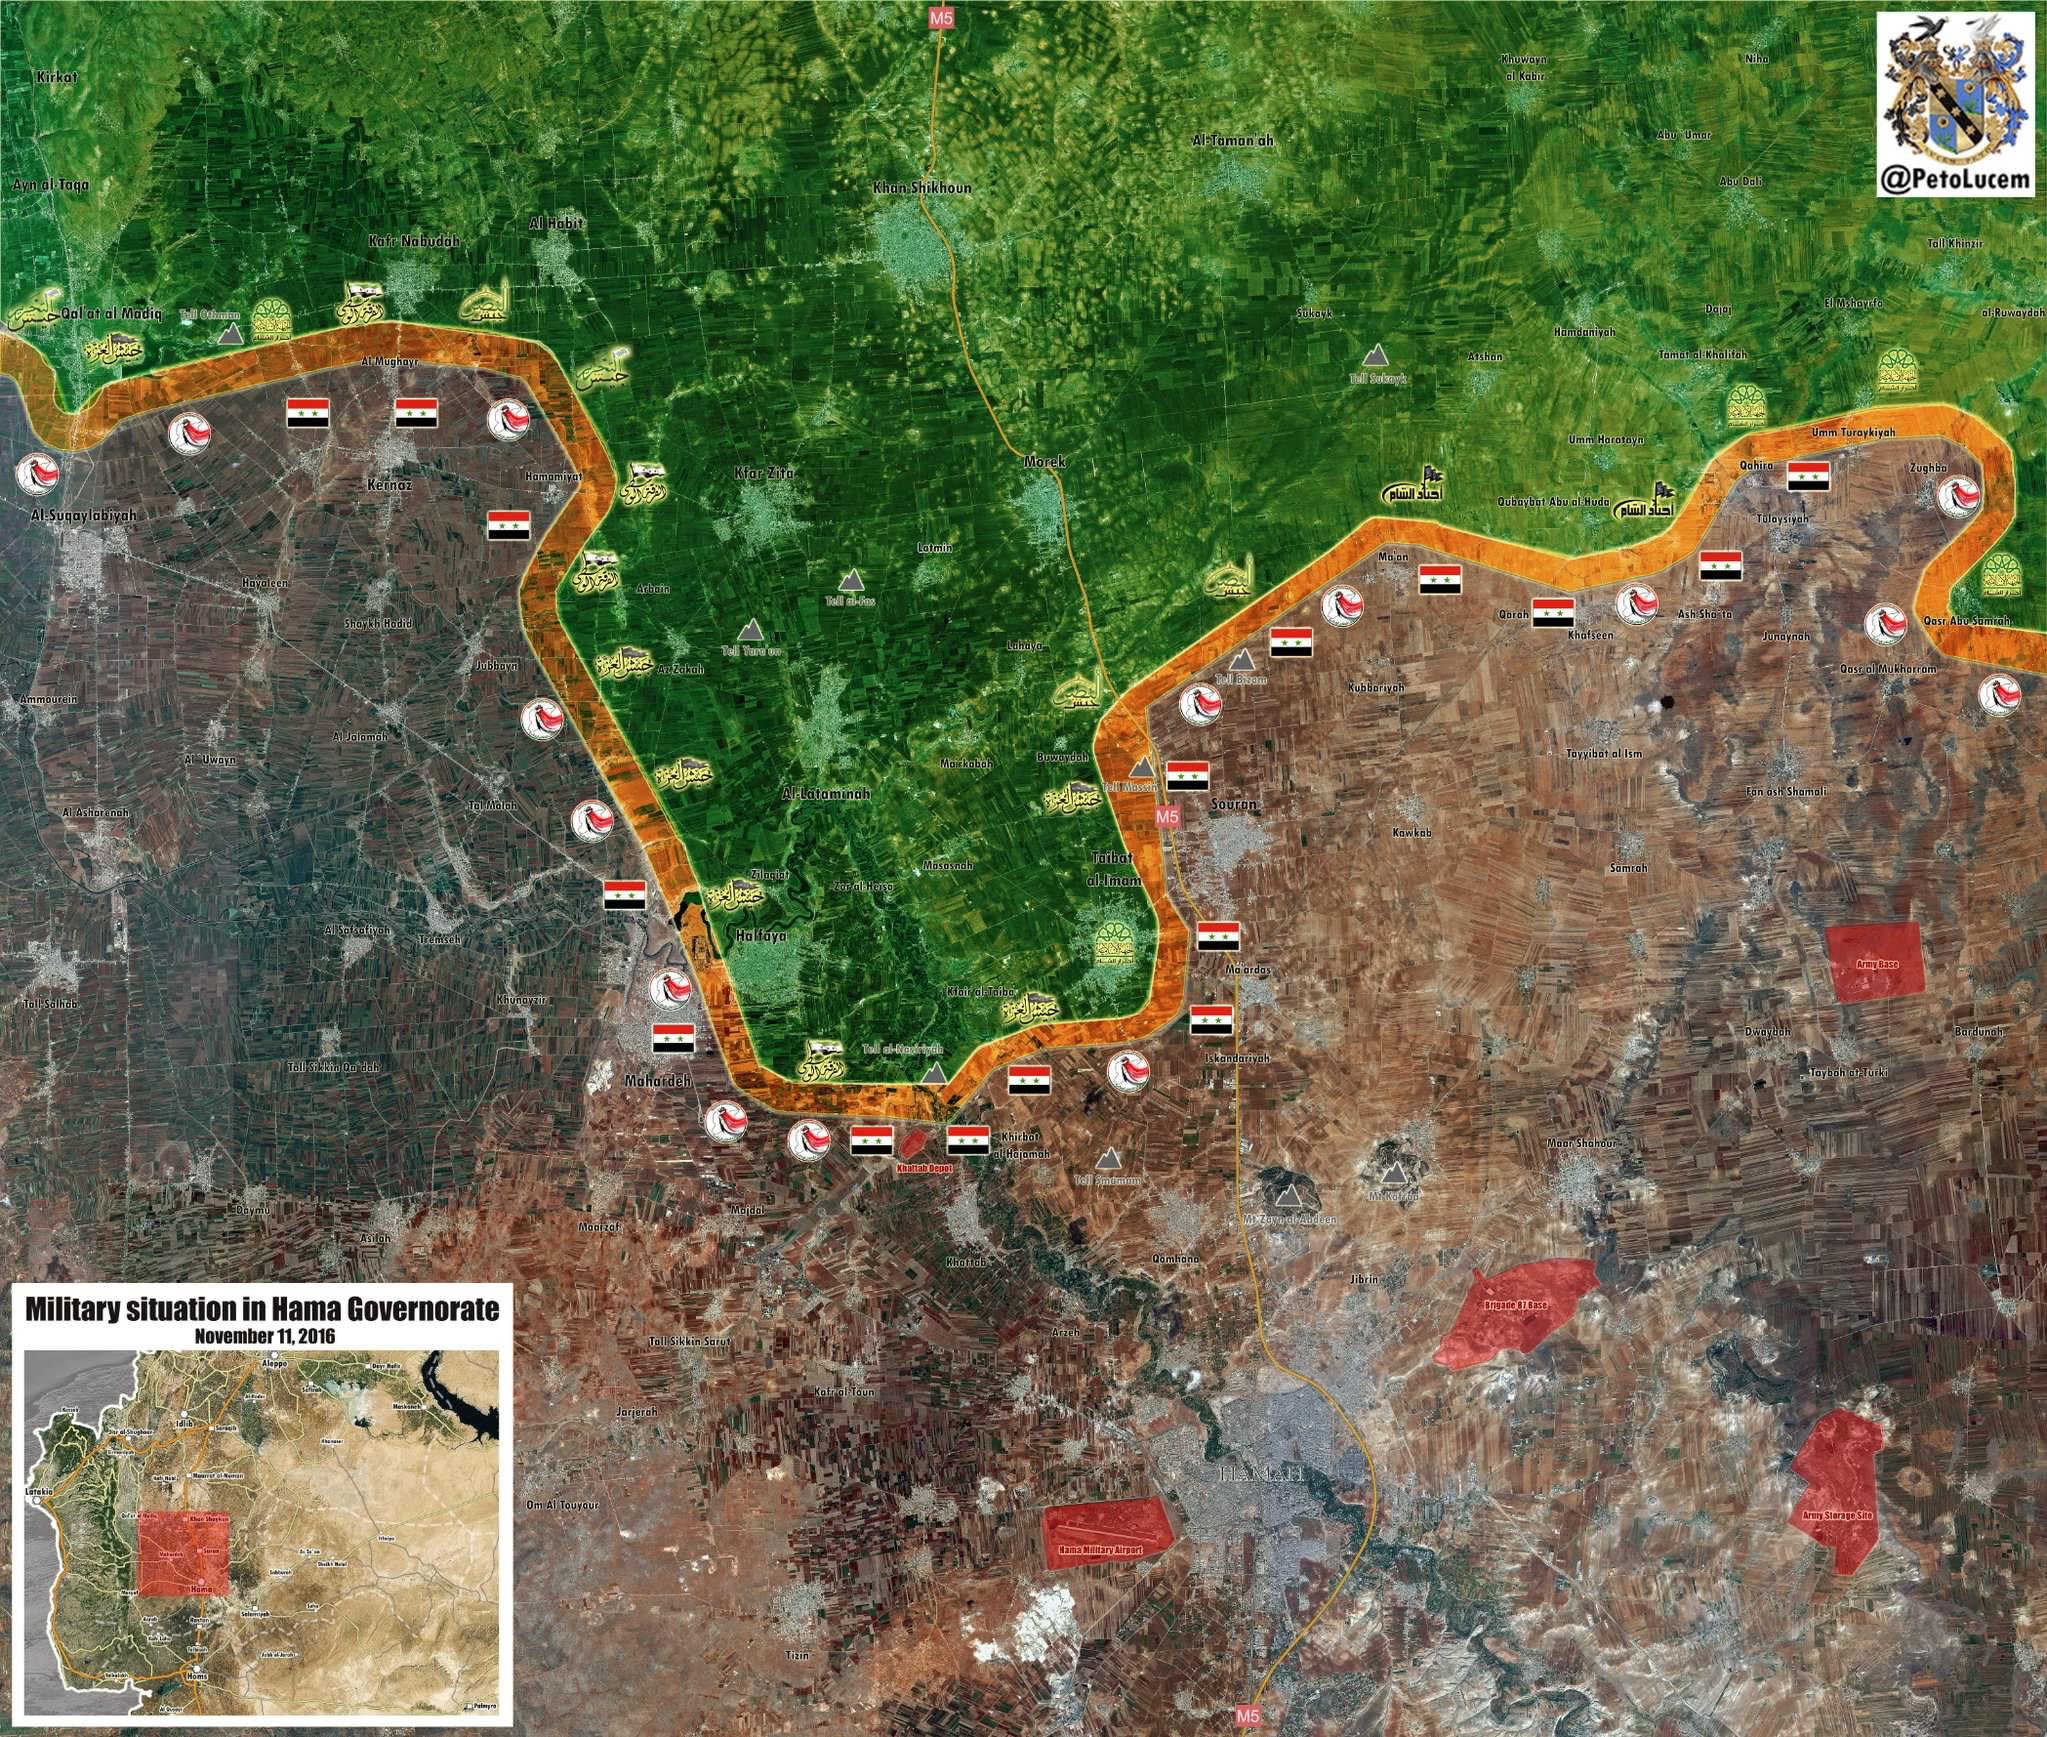 NEW MAP: Military situation in #Hama Governorate. #Syria HD version ...